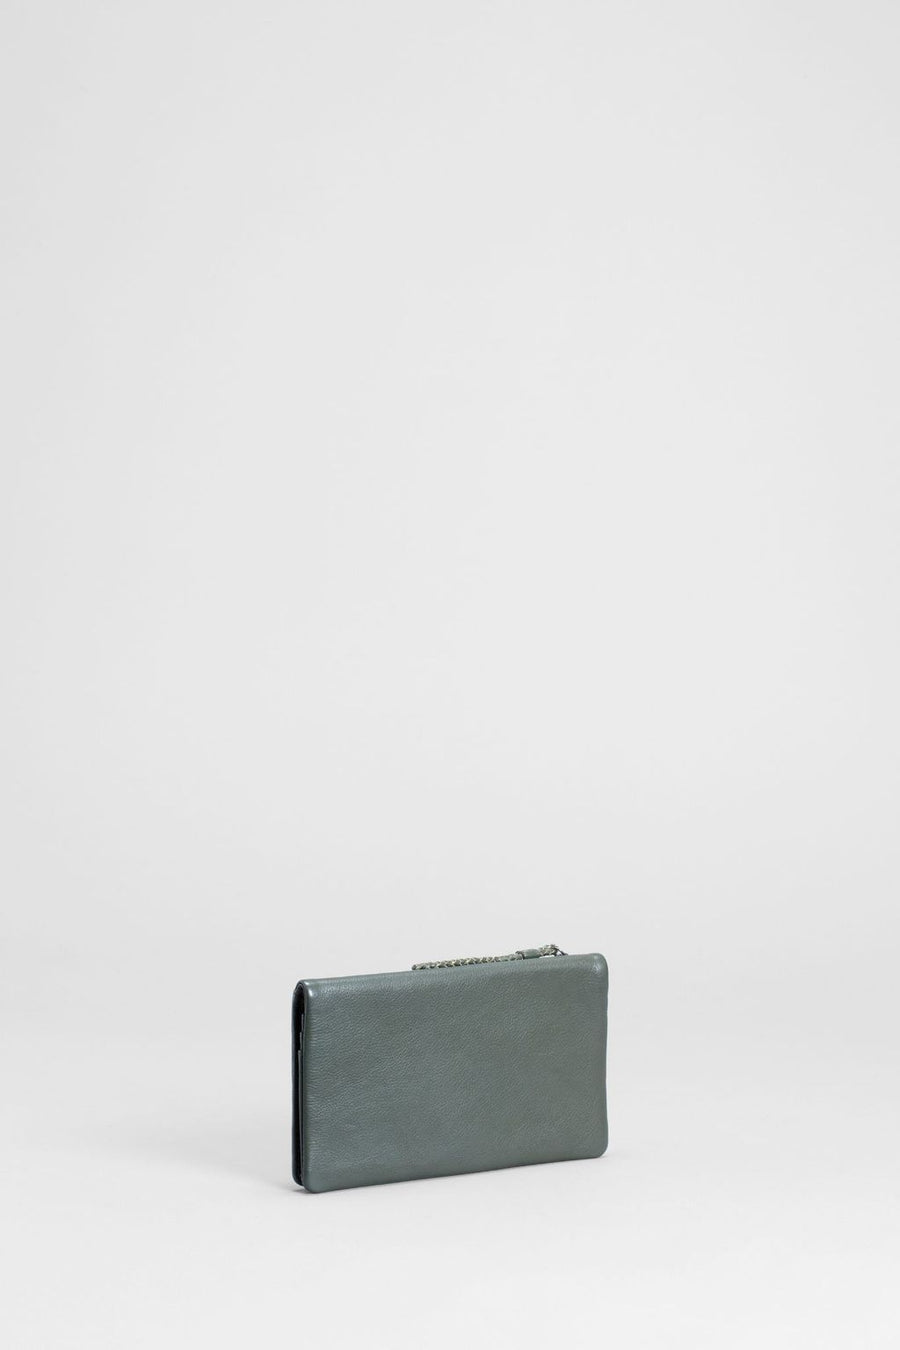 Hede Wallet - Army Green - Shop Online At Mookah - mookah.com.au